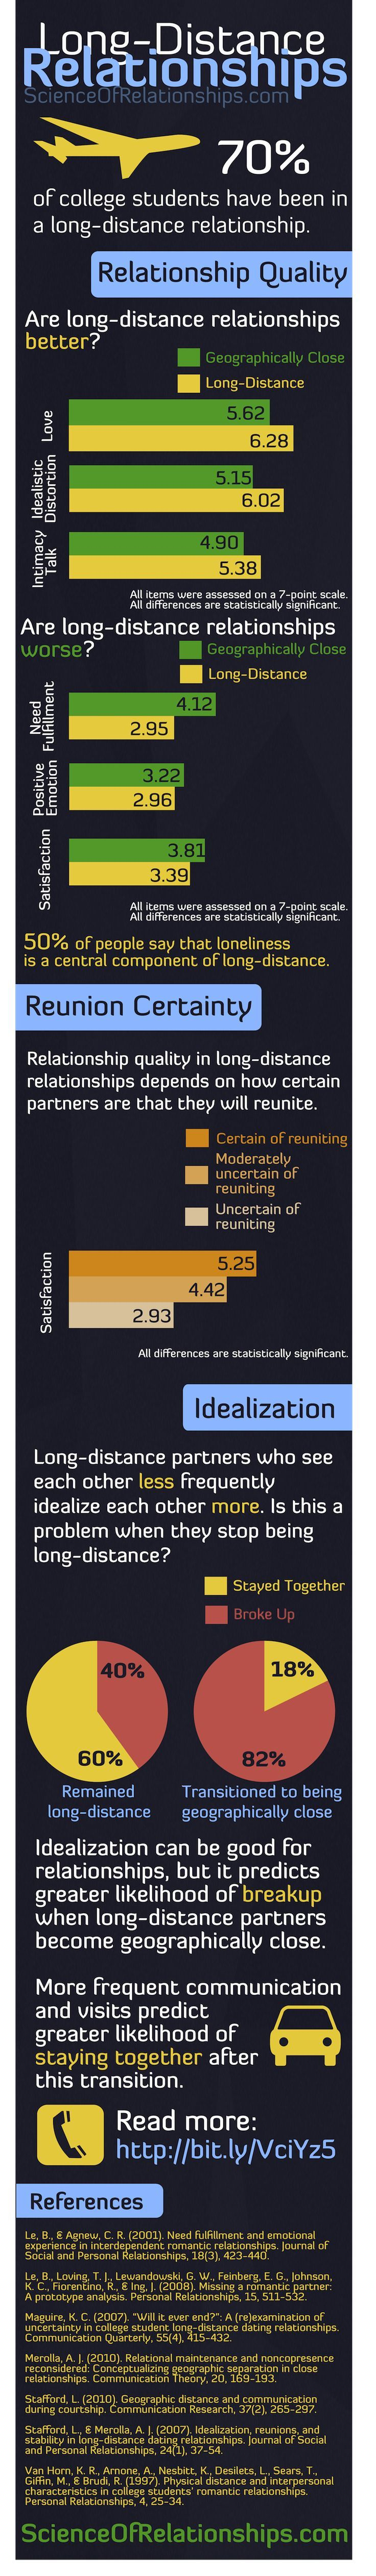 Long distance relationships, in reality, aren't less happy or satisfying than near distance relationships. However, moving closer may not always be the best idea for continuing the relationship (critique).